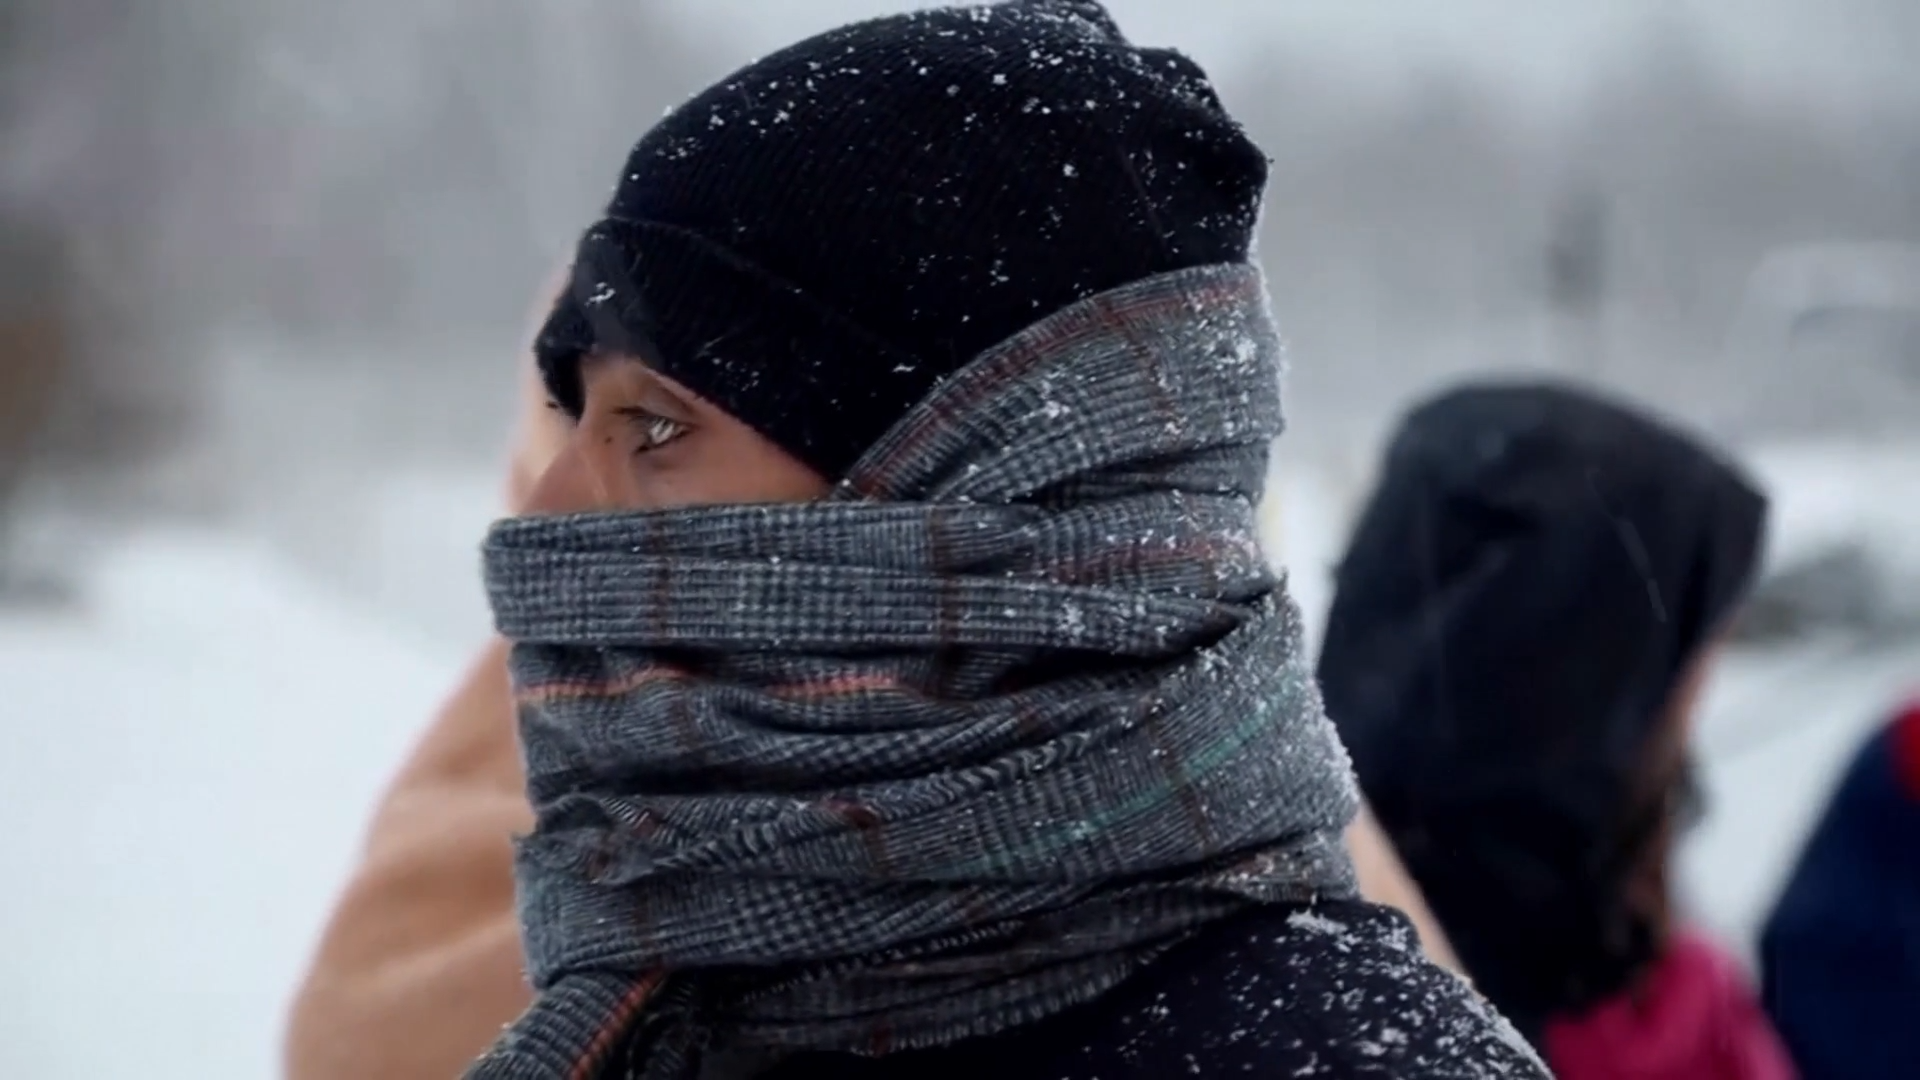 Migrants stranded outside in freezing weather in Bosnia